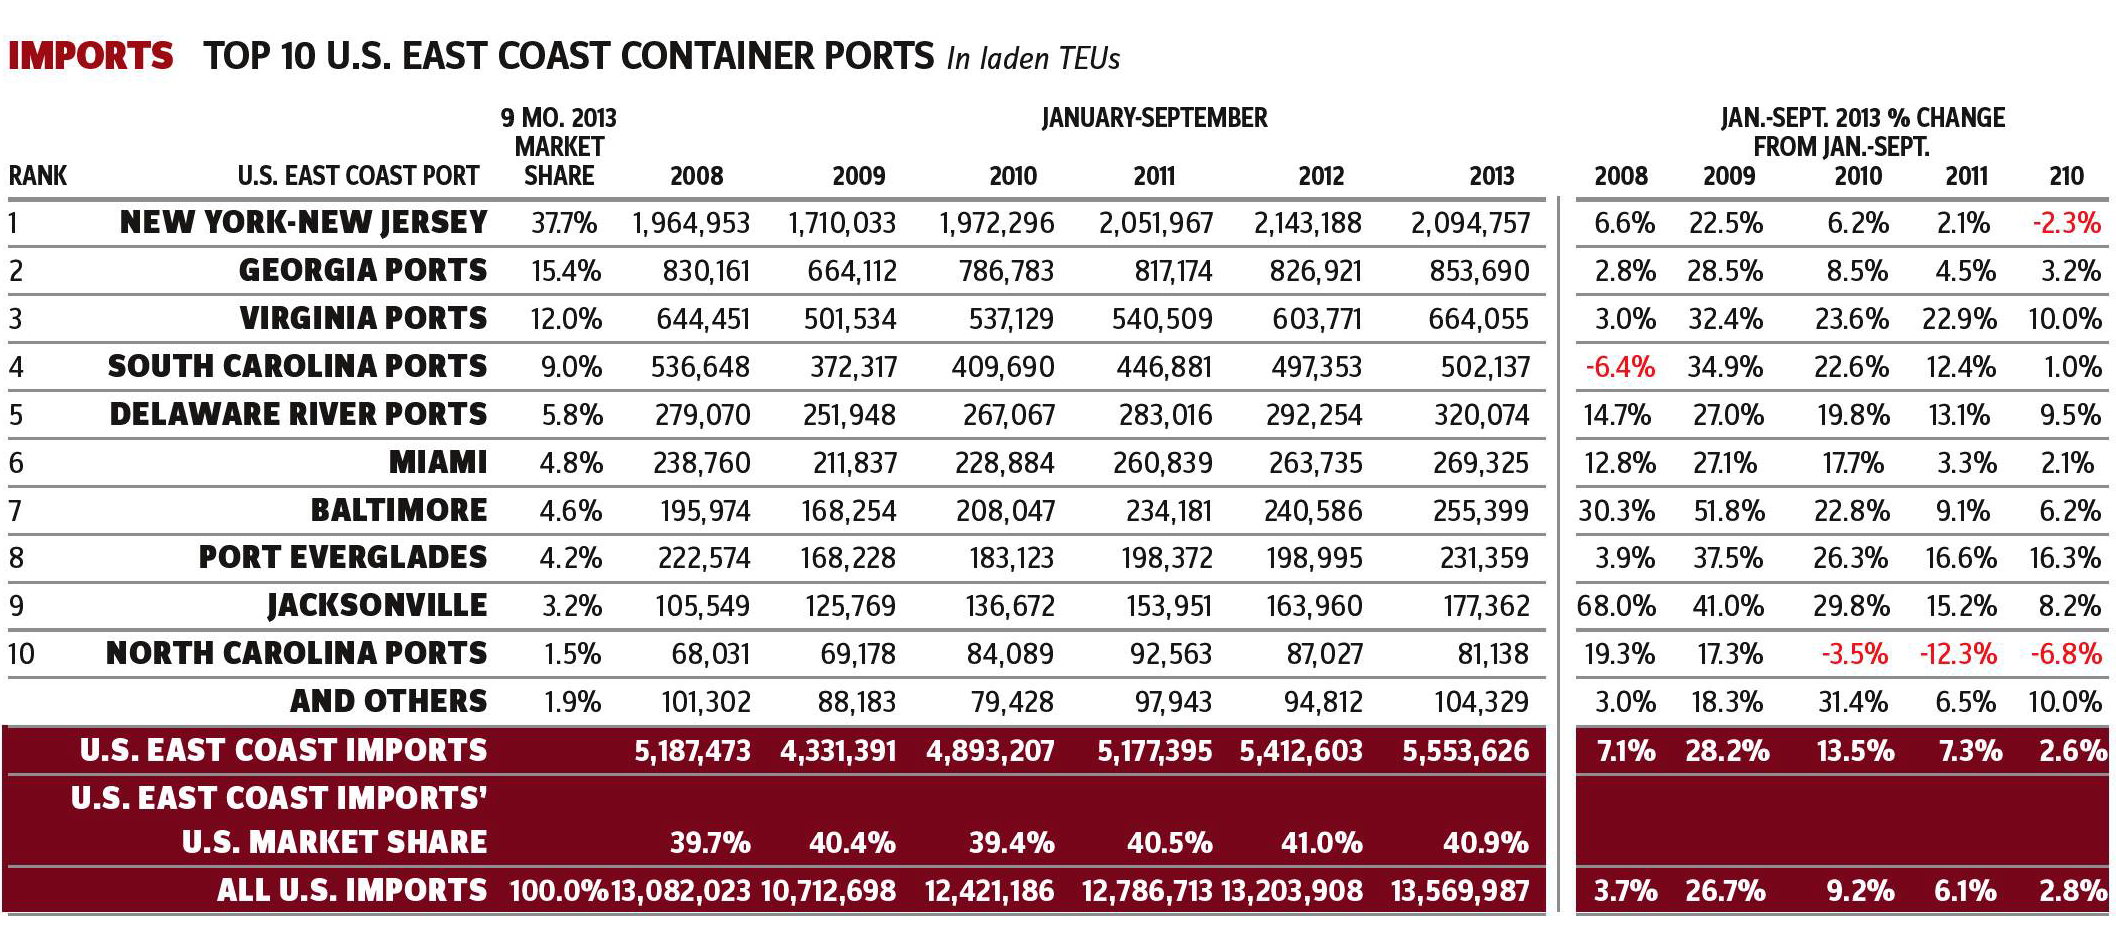 U.S._Container_Trade_Via_East_Coast_Ports-Imports